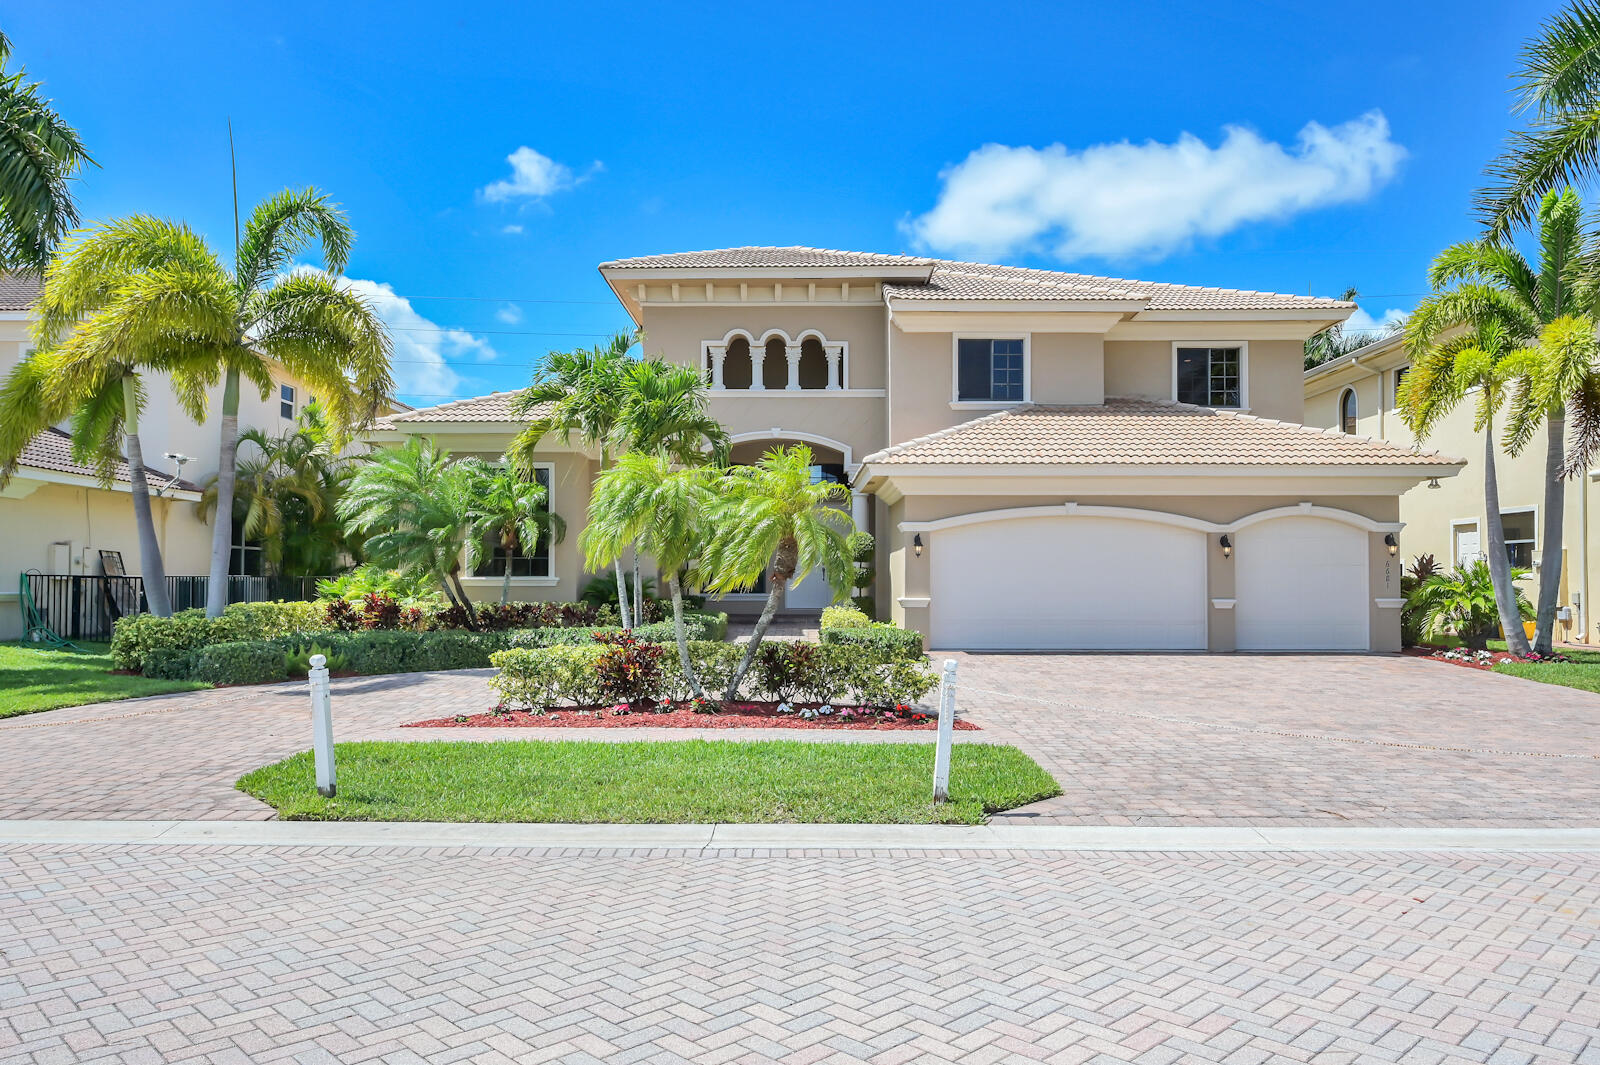 6681  Cobia Circle  For Sale 10722966, FL